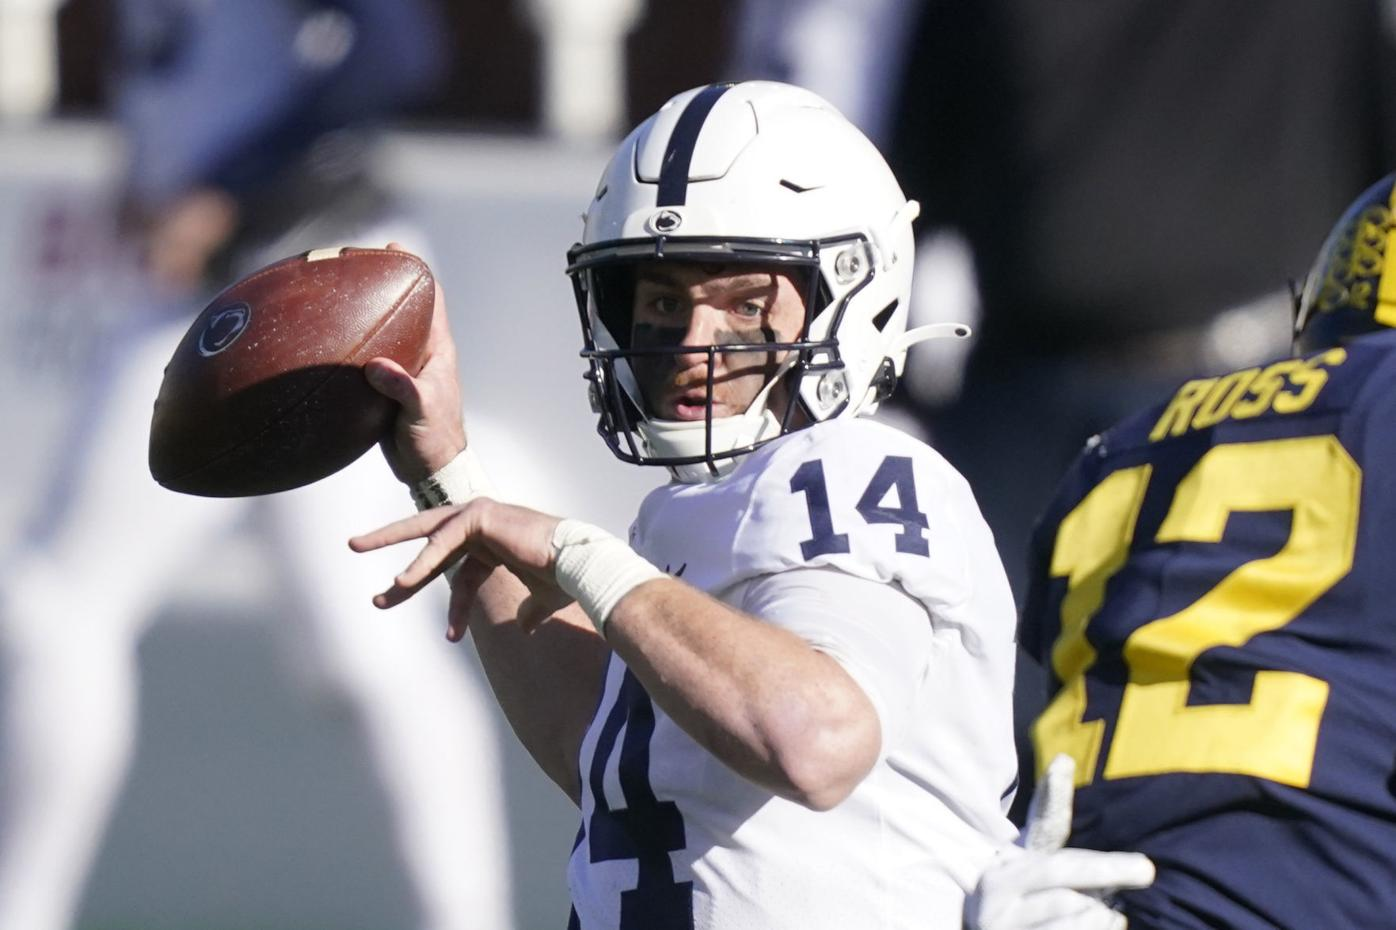 Penn State's spring focused on QB Clifford